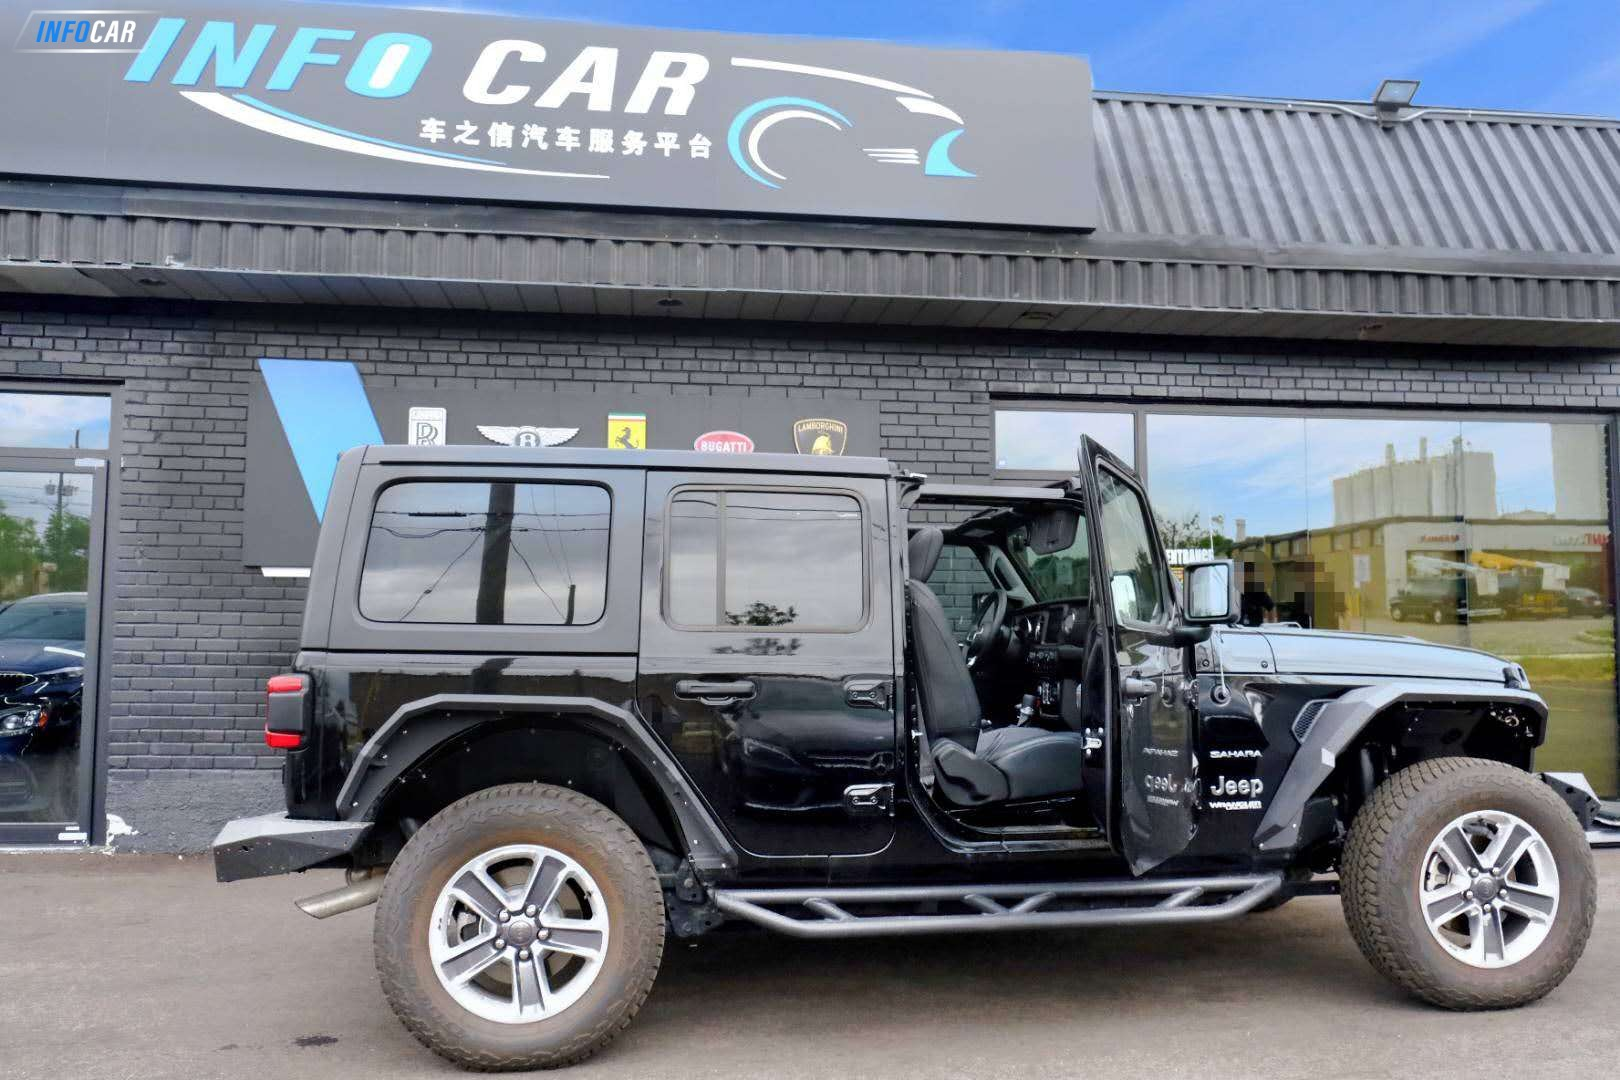 2019 Jeep Wrangler  UNLIMITED - INFOCAR - Toronto's Most Comprehensive New and Used Auto Trading Platform